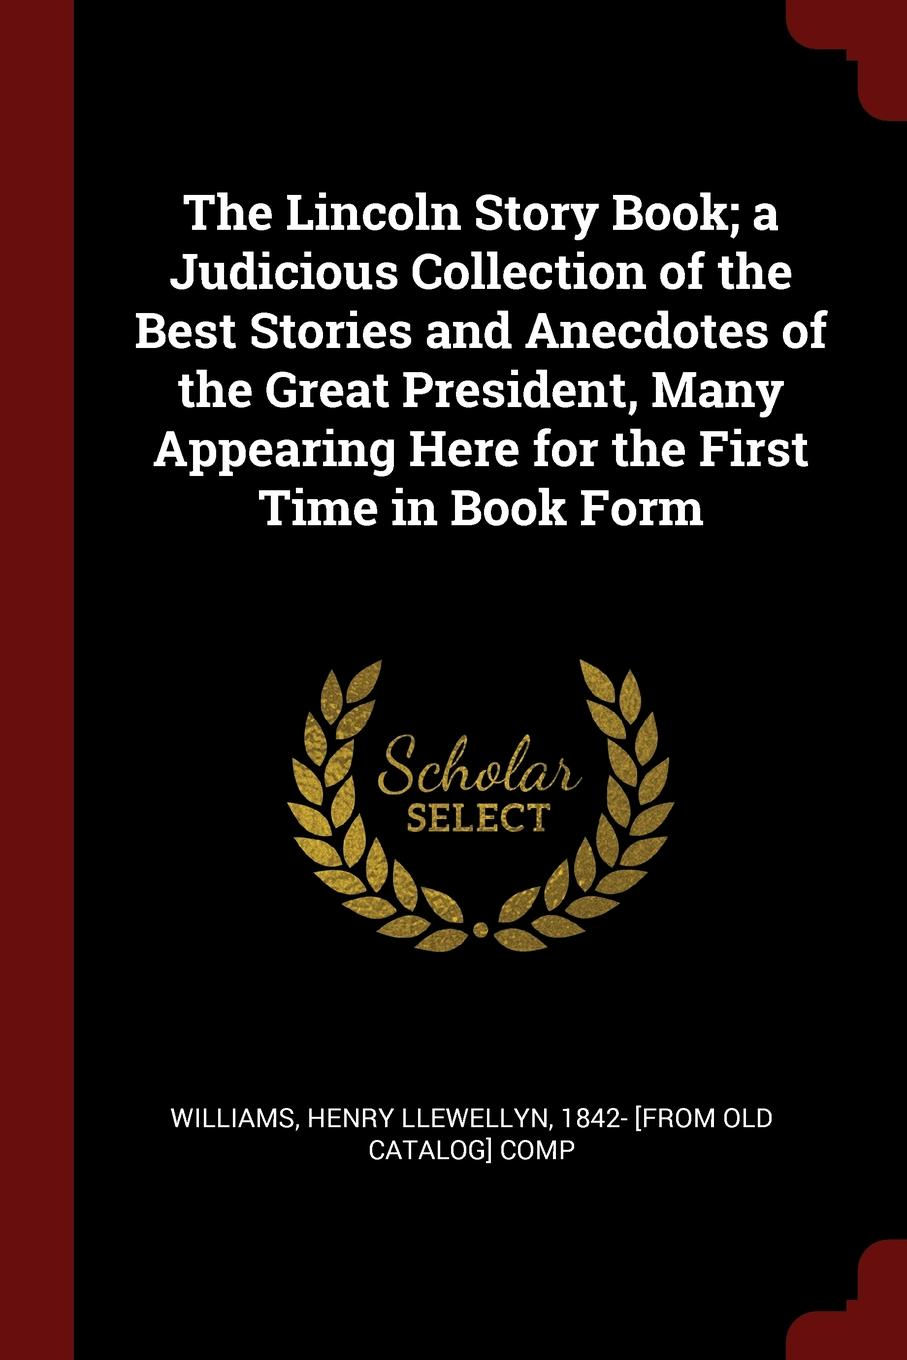 The Lincoln Story Book; a Judicious Collection of the Best Stories and Anecdotes of the Great President, Many Appearing Here for the First Time in Book Form